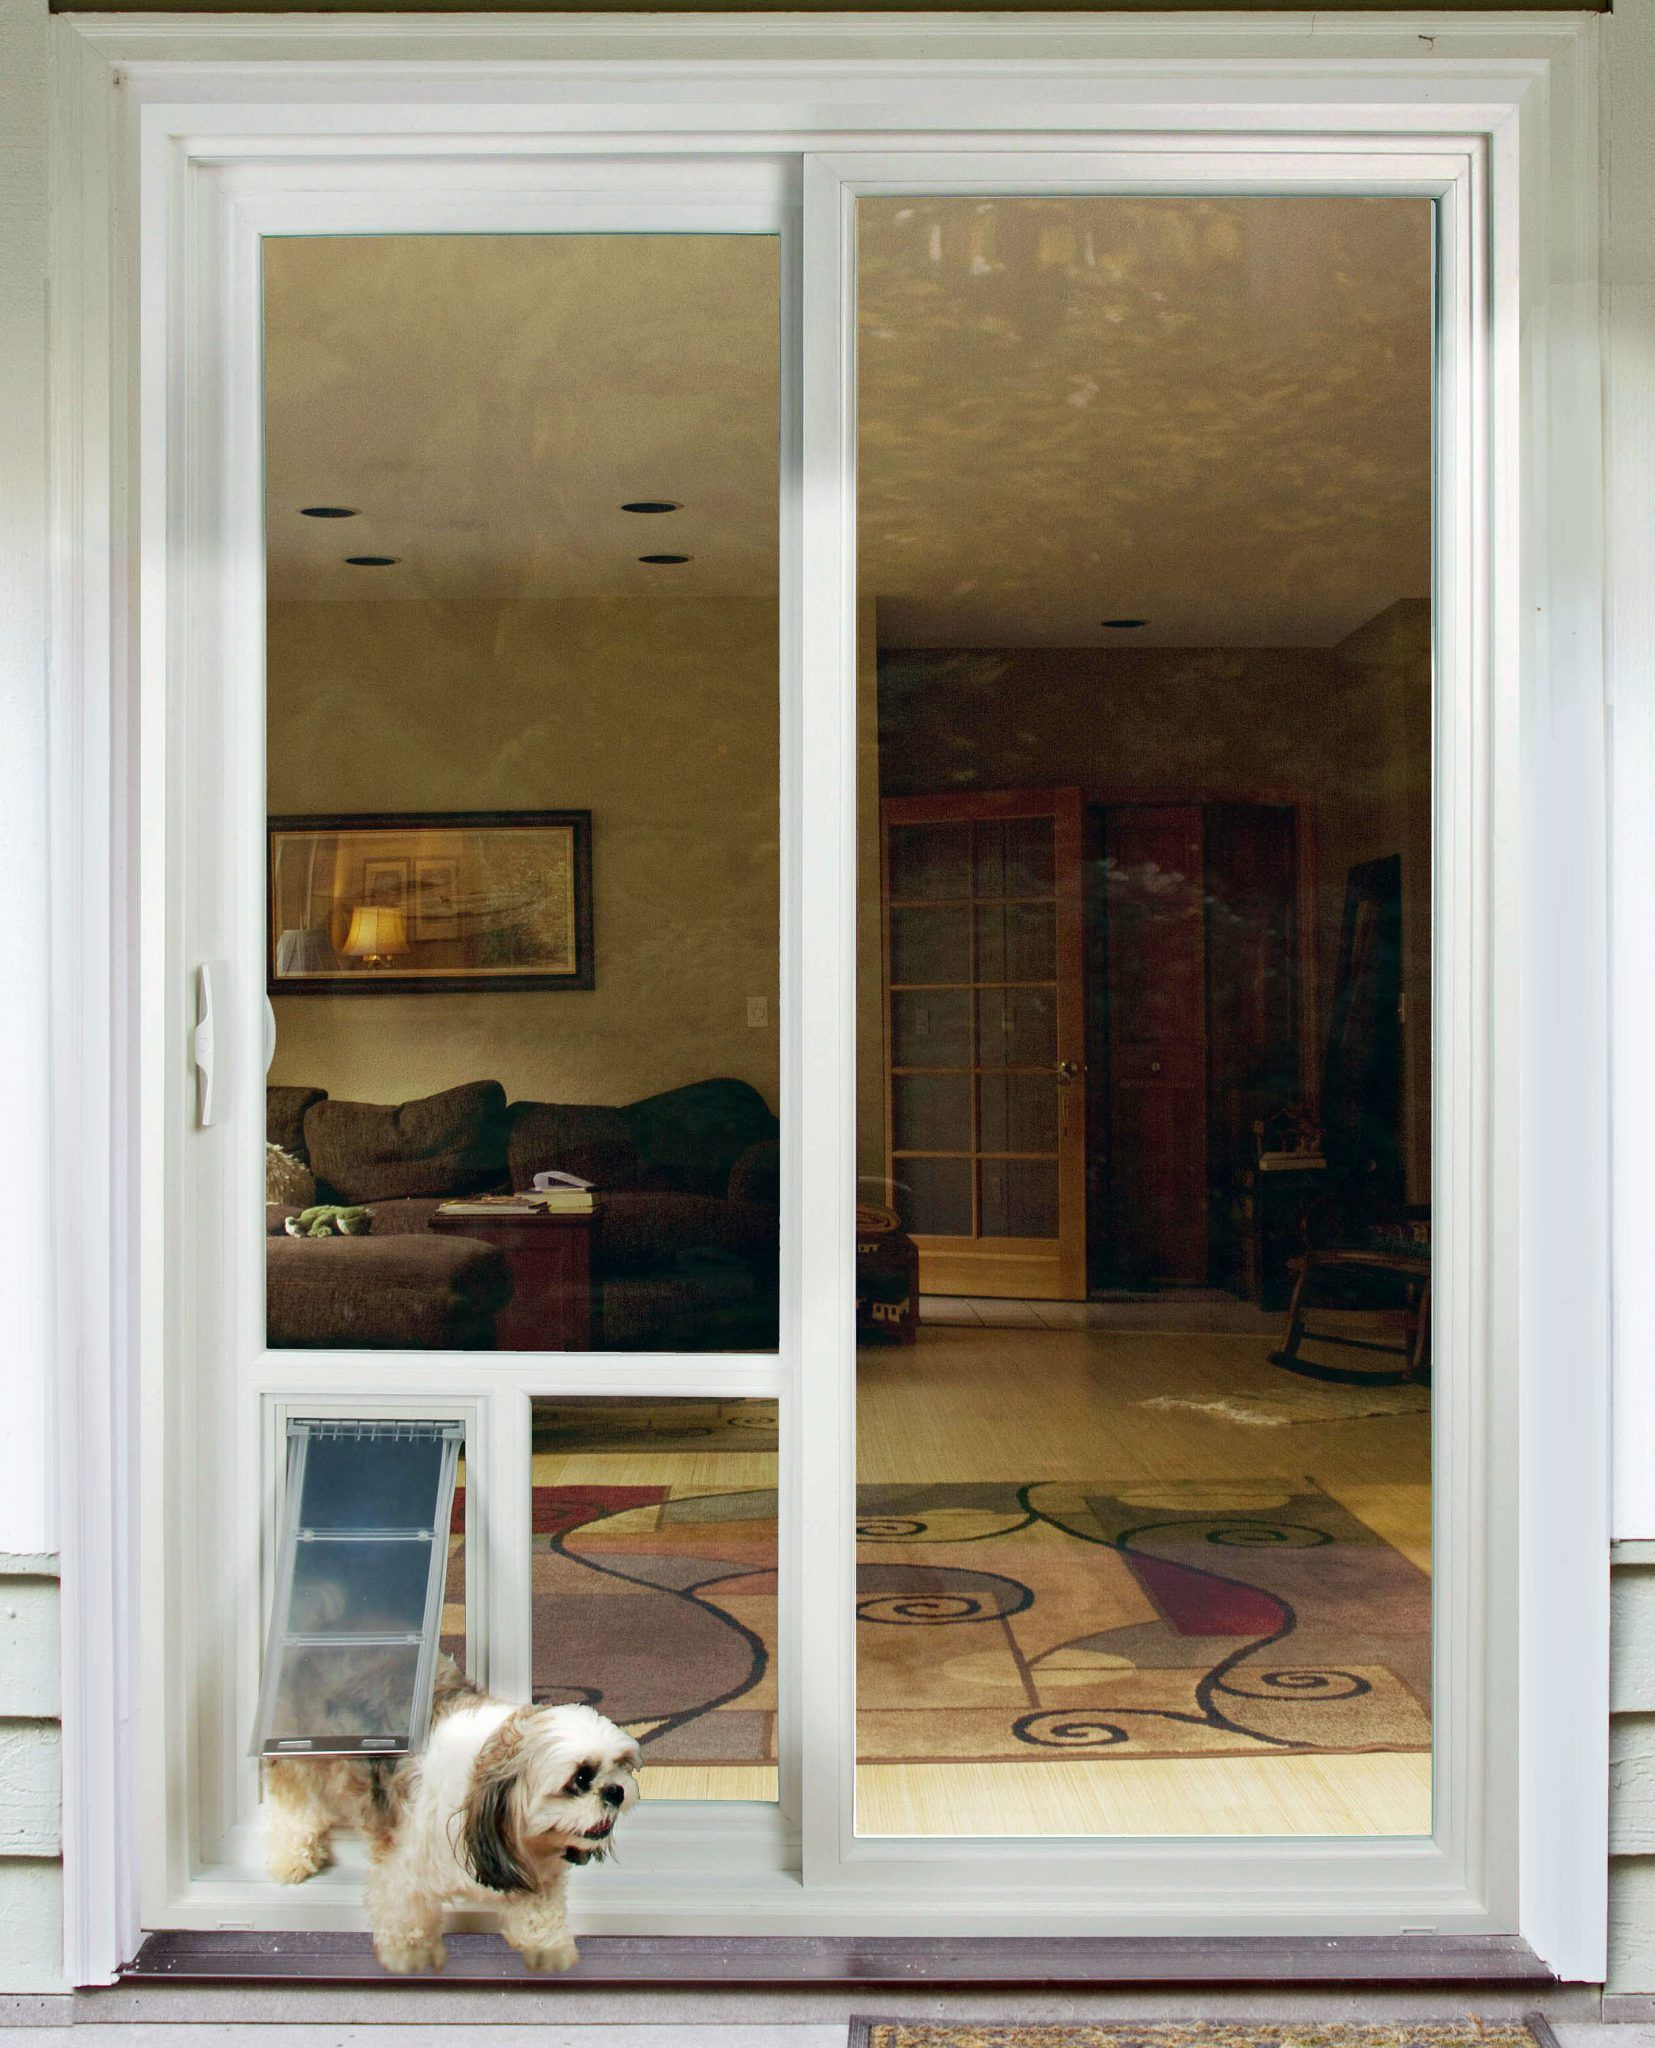 Door pet door idea for glass door in natural wood frame door pet door guys can put a pet door directly into your sliding glass door replace the glass to get dog doors for glass doors planetlyrics Image collections